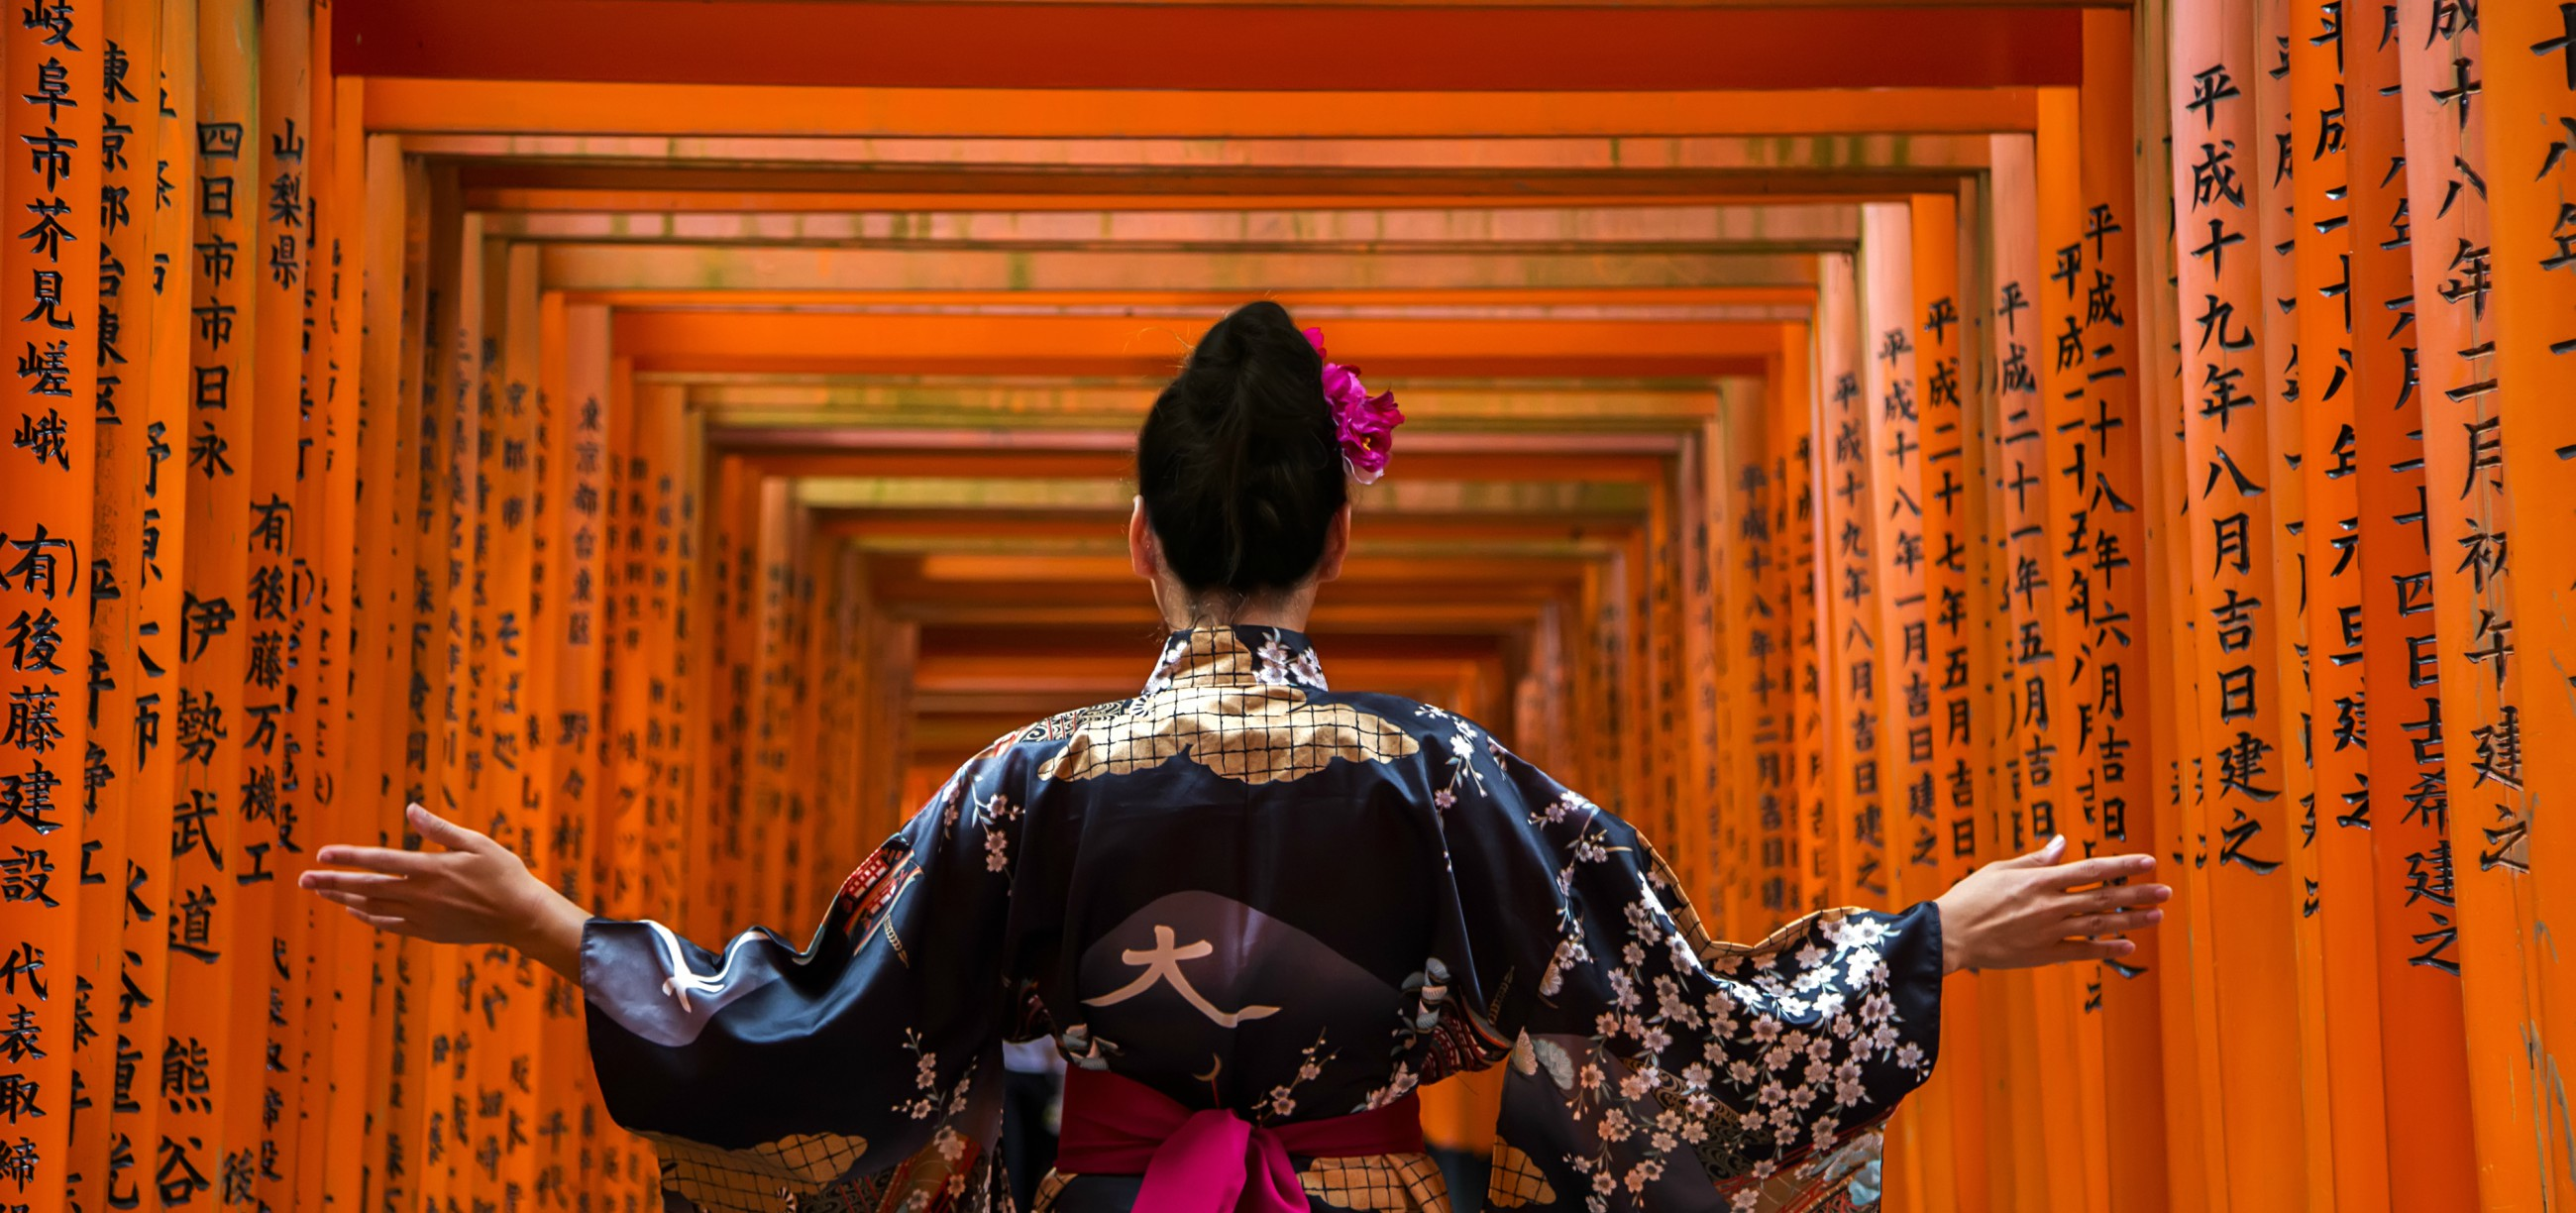 6-Kyoto-Shrines-And-Temples-You-Just-Have-To-Visit